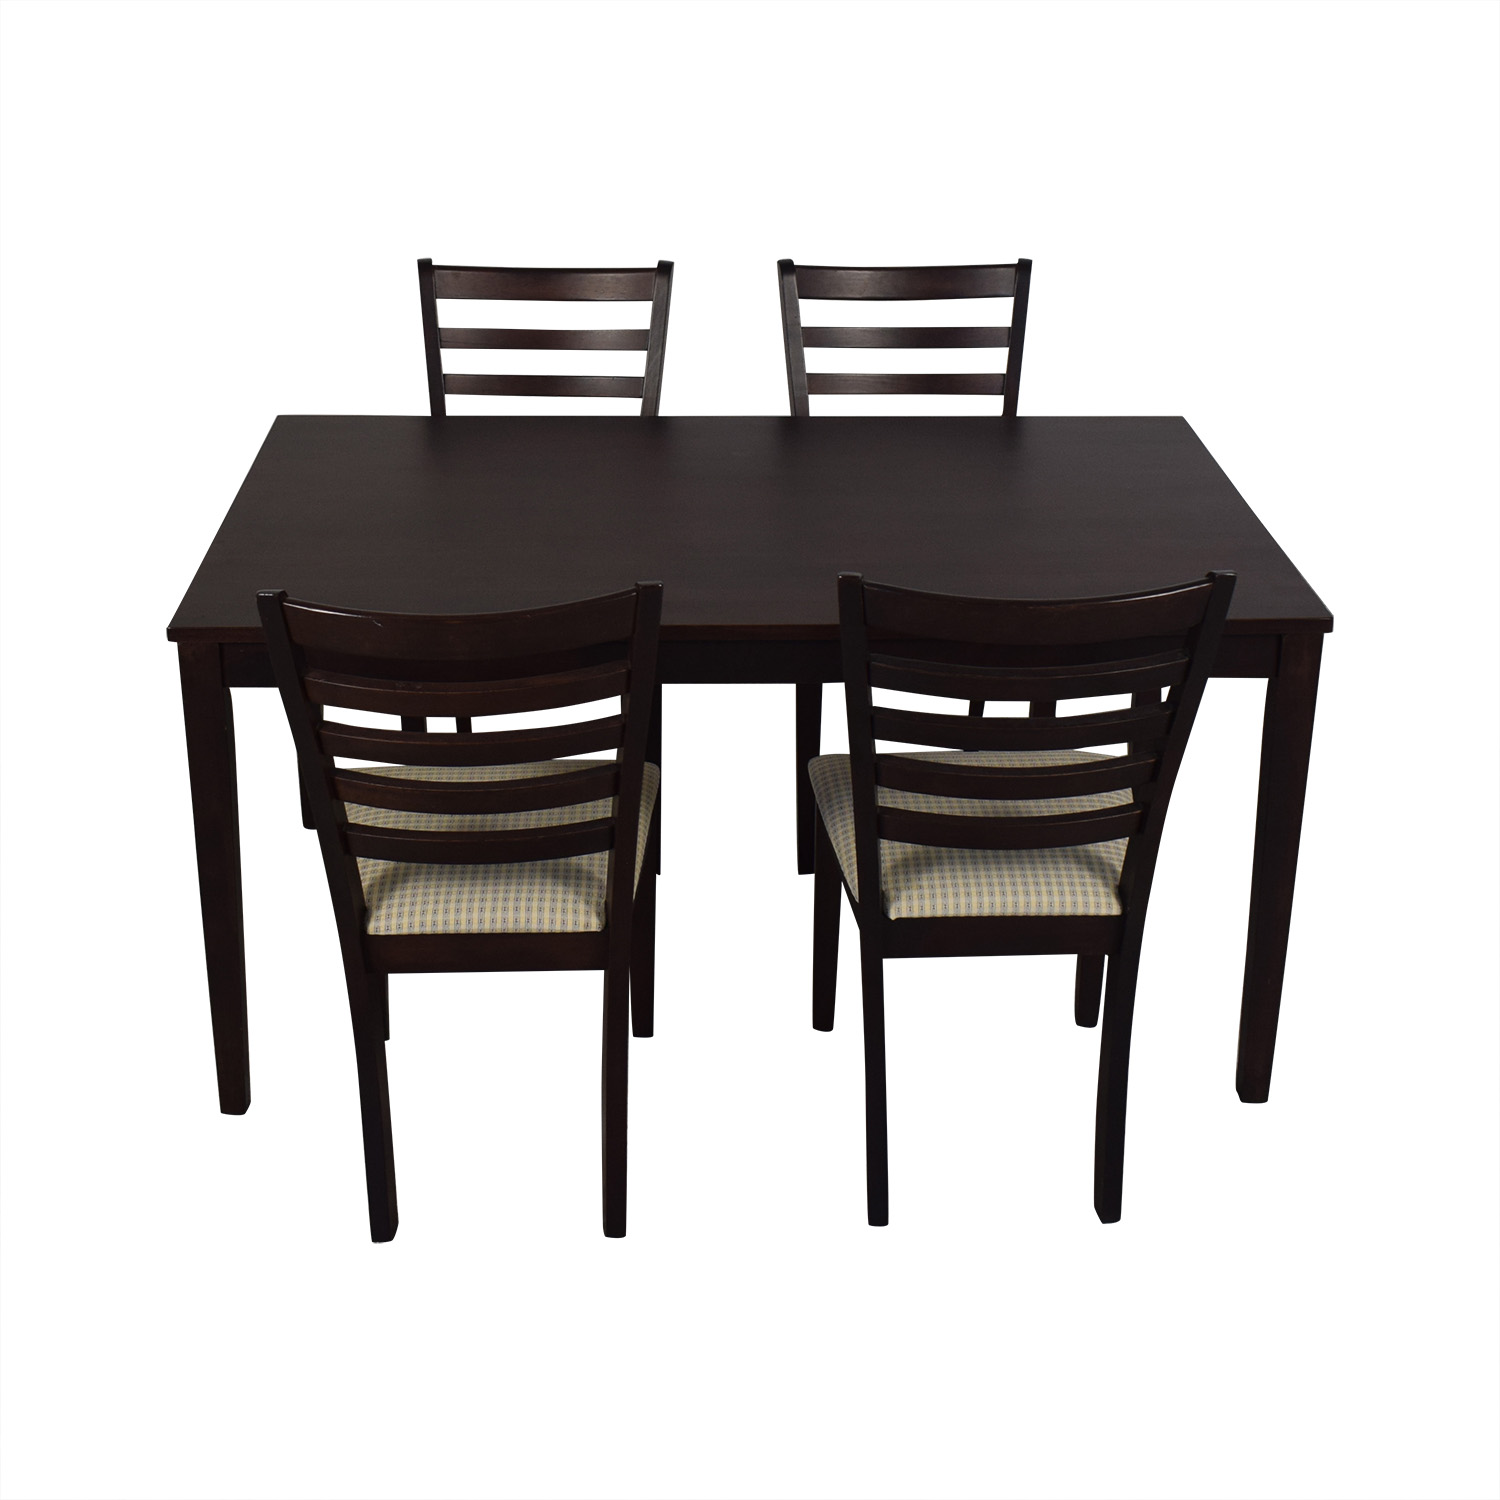 Dining Set with Beige Upholstered Chairs Tables